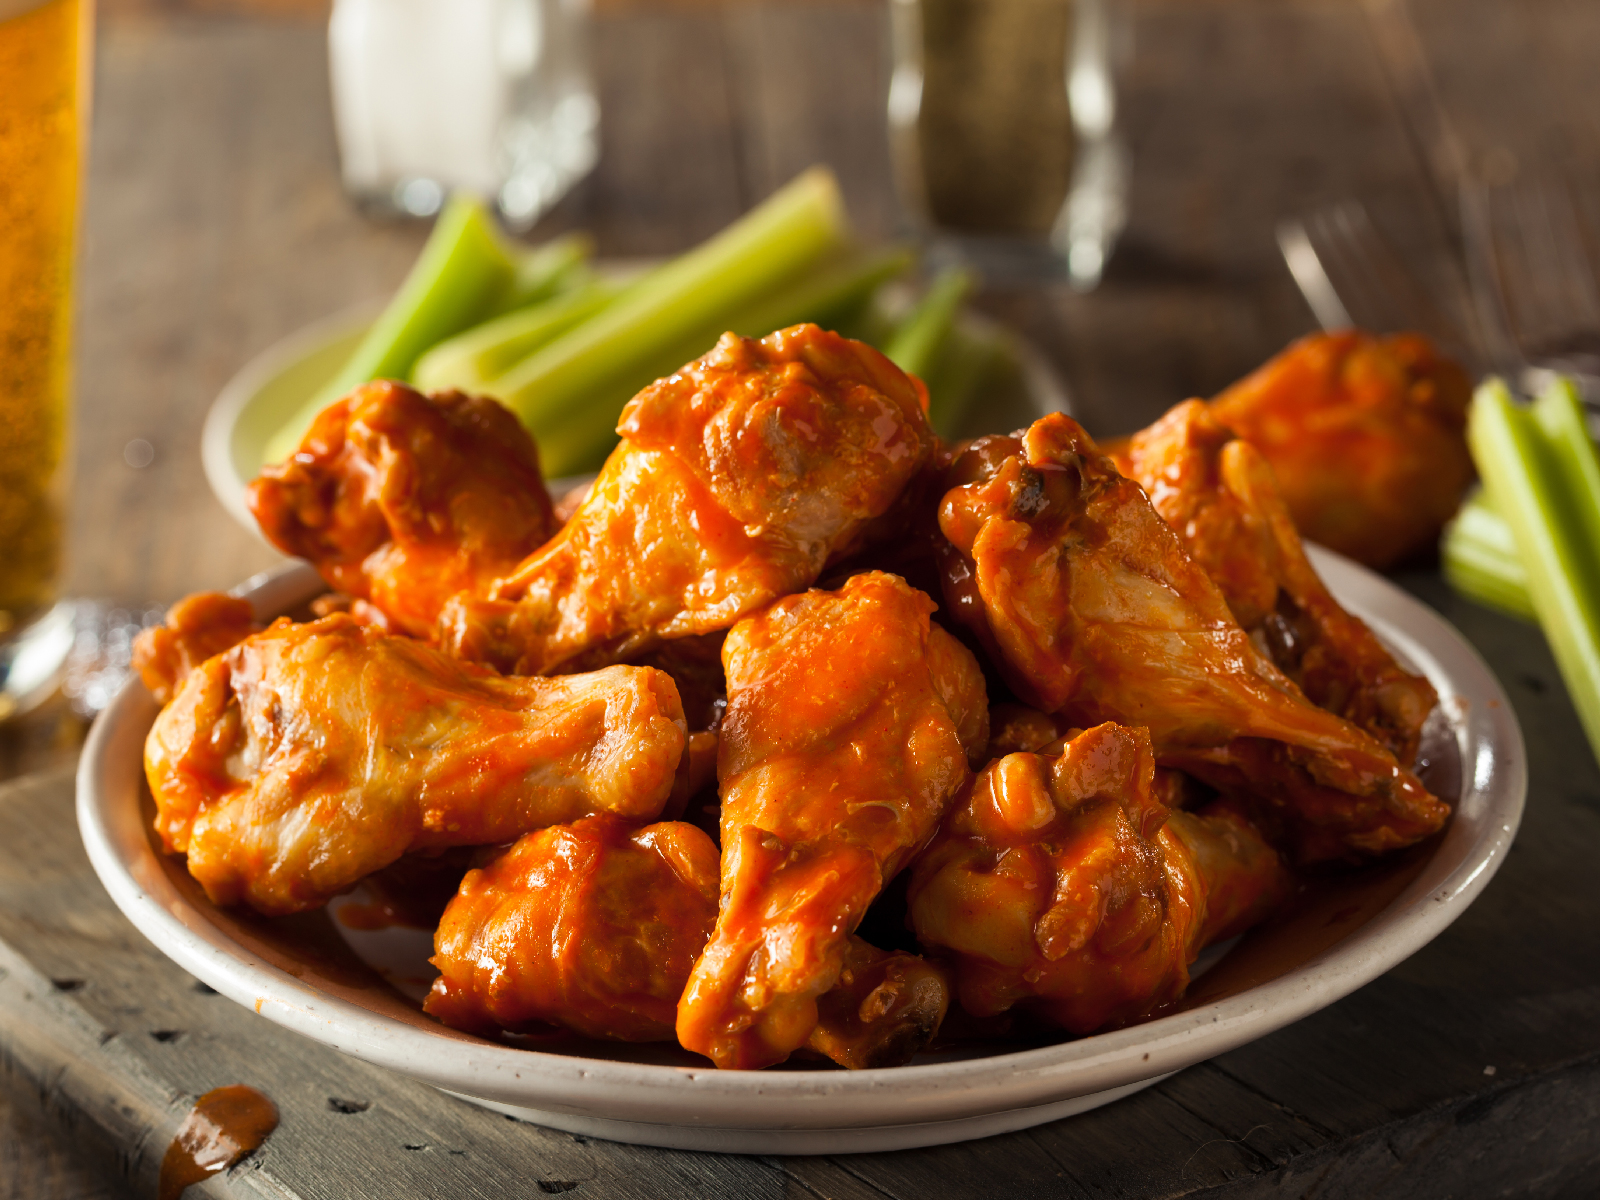 chicken-wing-day-FT-BLOG0719.jpg